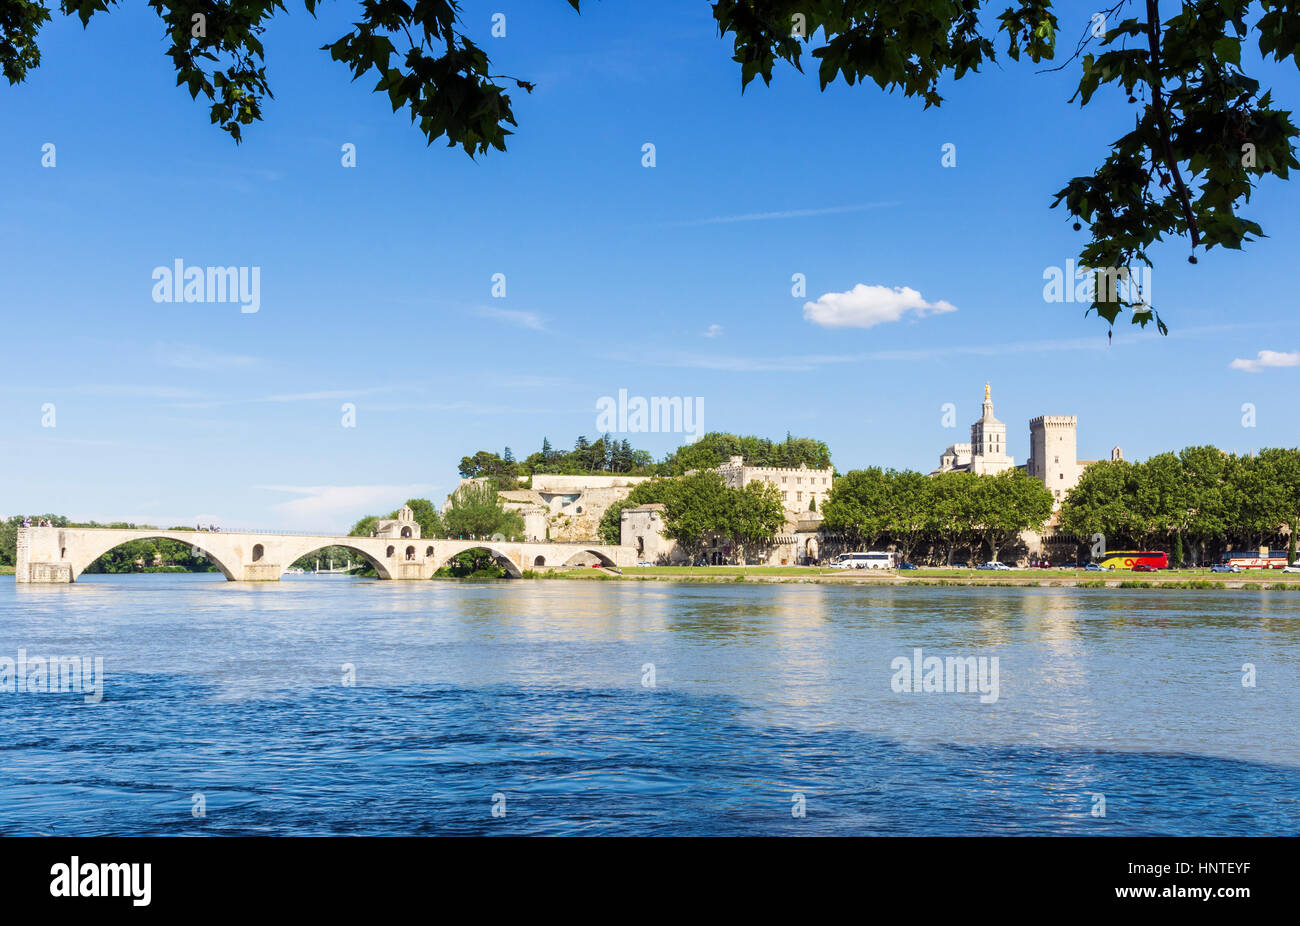 Avignon city skyline and Pont Saint-Bénézet bridge from the Rhone River, Avignon, France - Stock Image